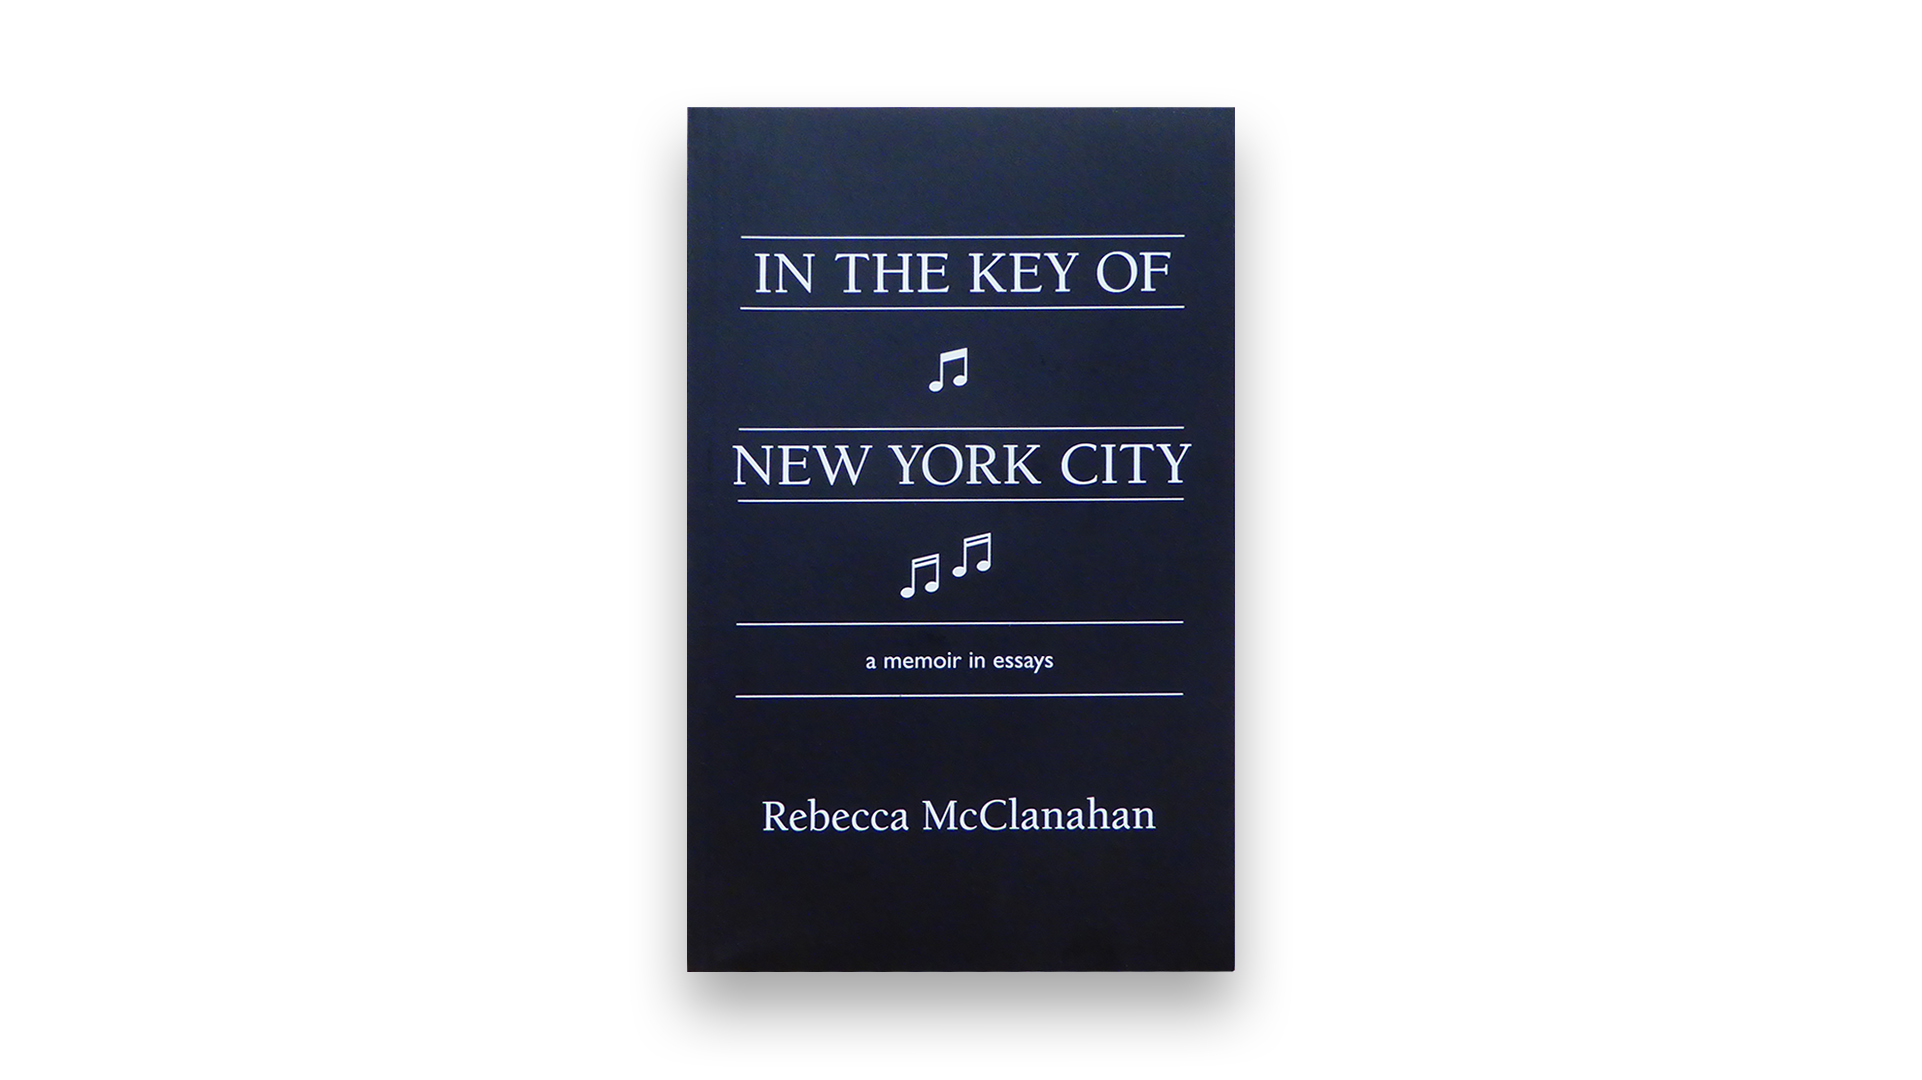 https://redhenpress.org/collections/fall-2020/products/in-the-key-of-new-york-city-by-rebecca-mcclanahan